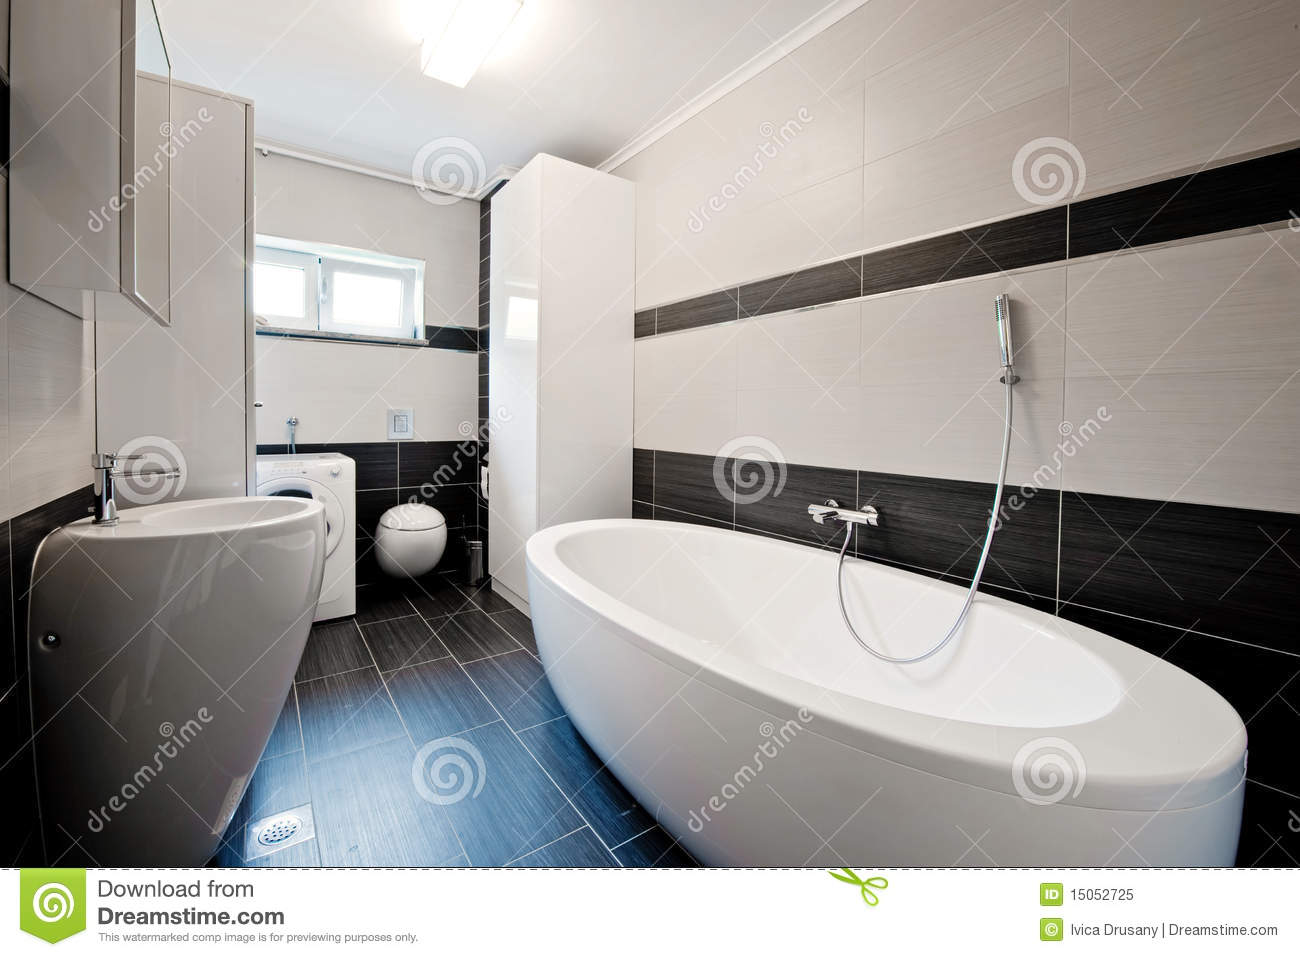 Modern bathroom 3d xray blue transparent collage royalty for Moderne badezimmer fliesen